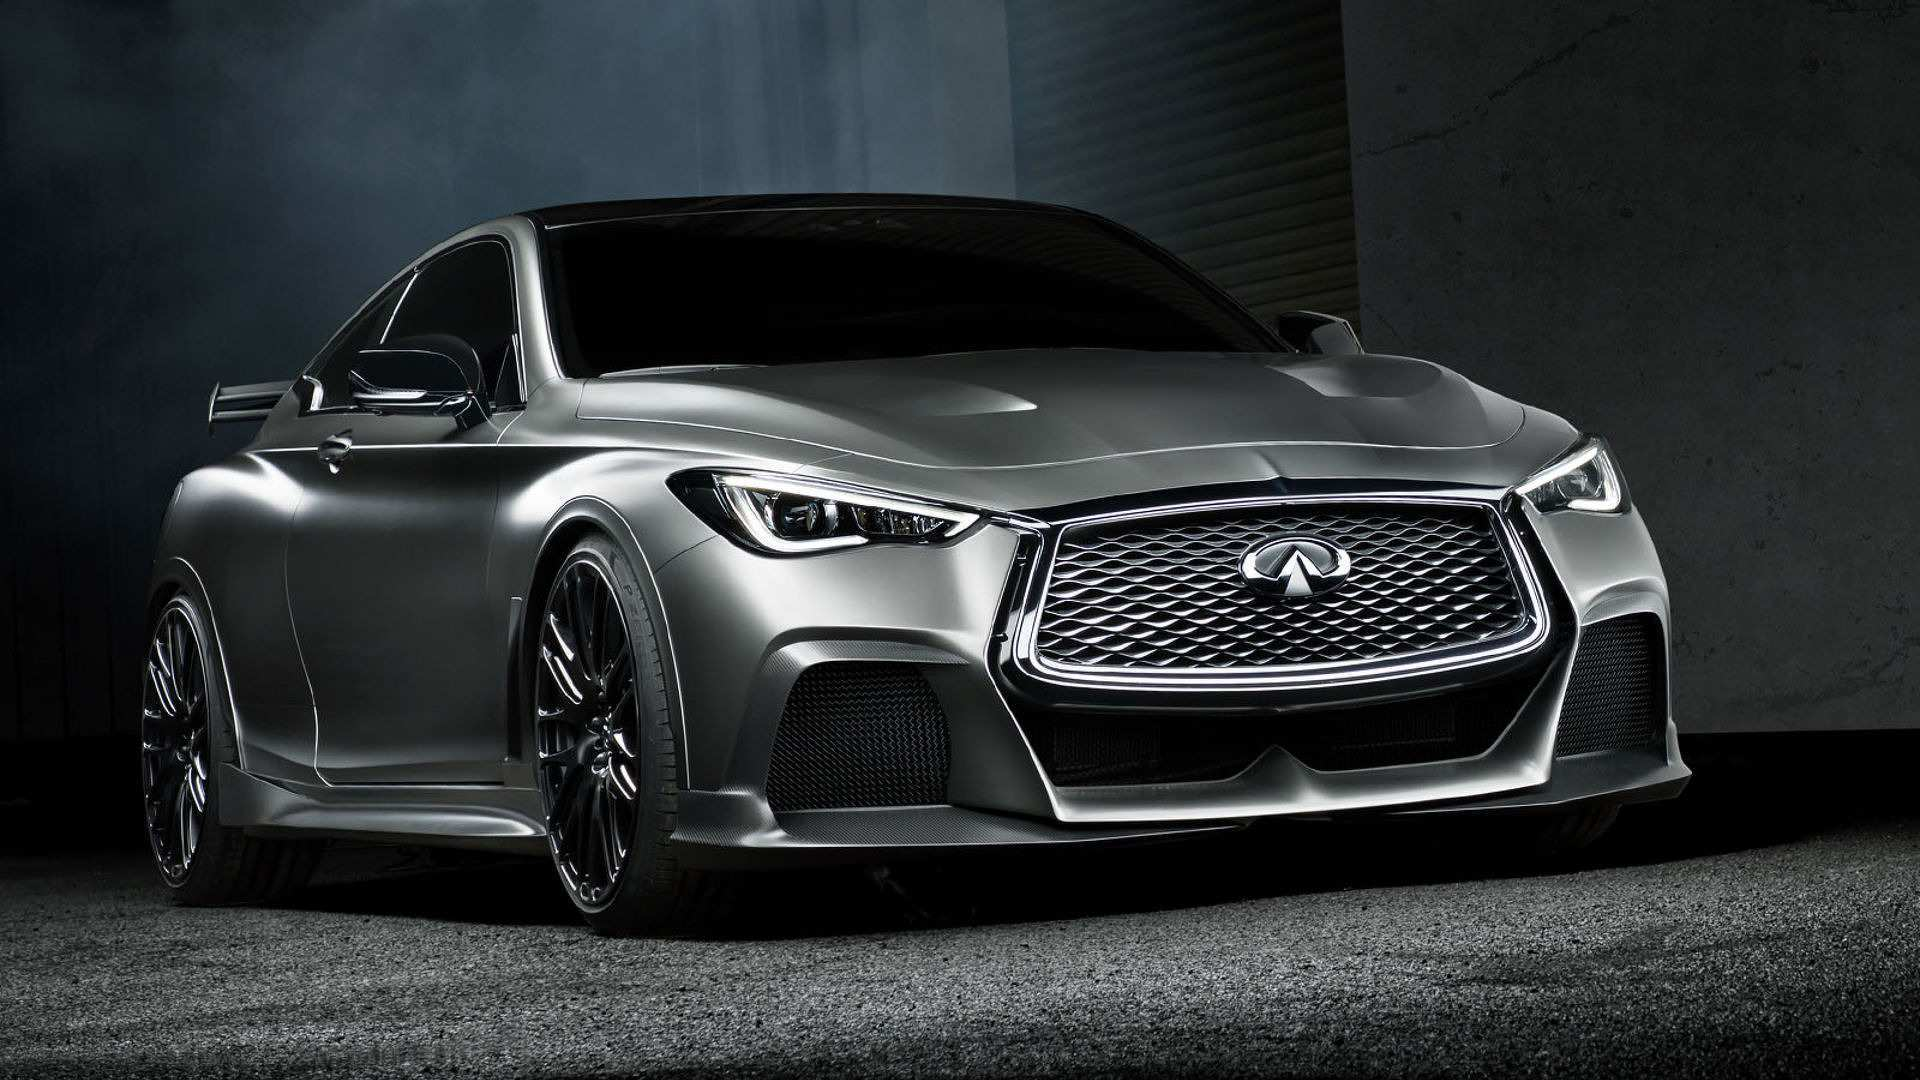 92 New 2020 Infiniti Q60 Coupe Convertible Specs and Review with 2020 Infiniti Q60 Coupe Convertible